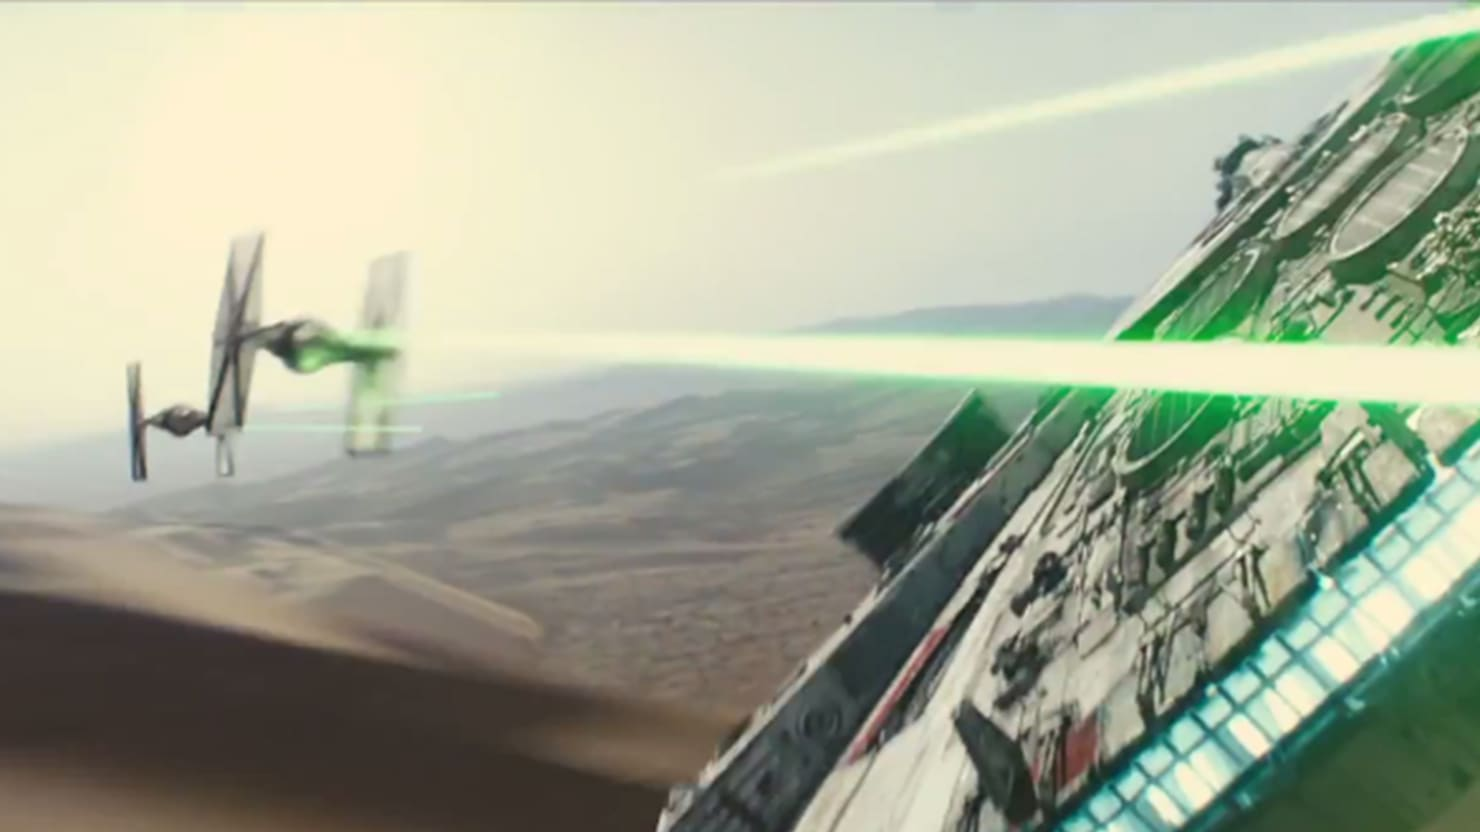 'Star Wars: The Force Awakens' Spoiler? A Big Secret Reportedly Leaks Online